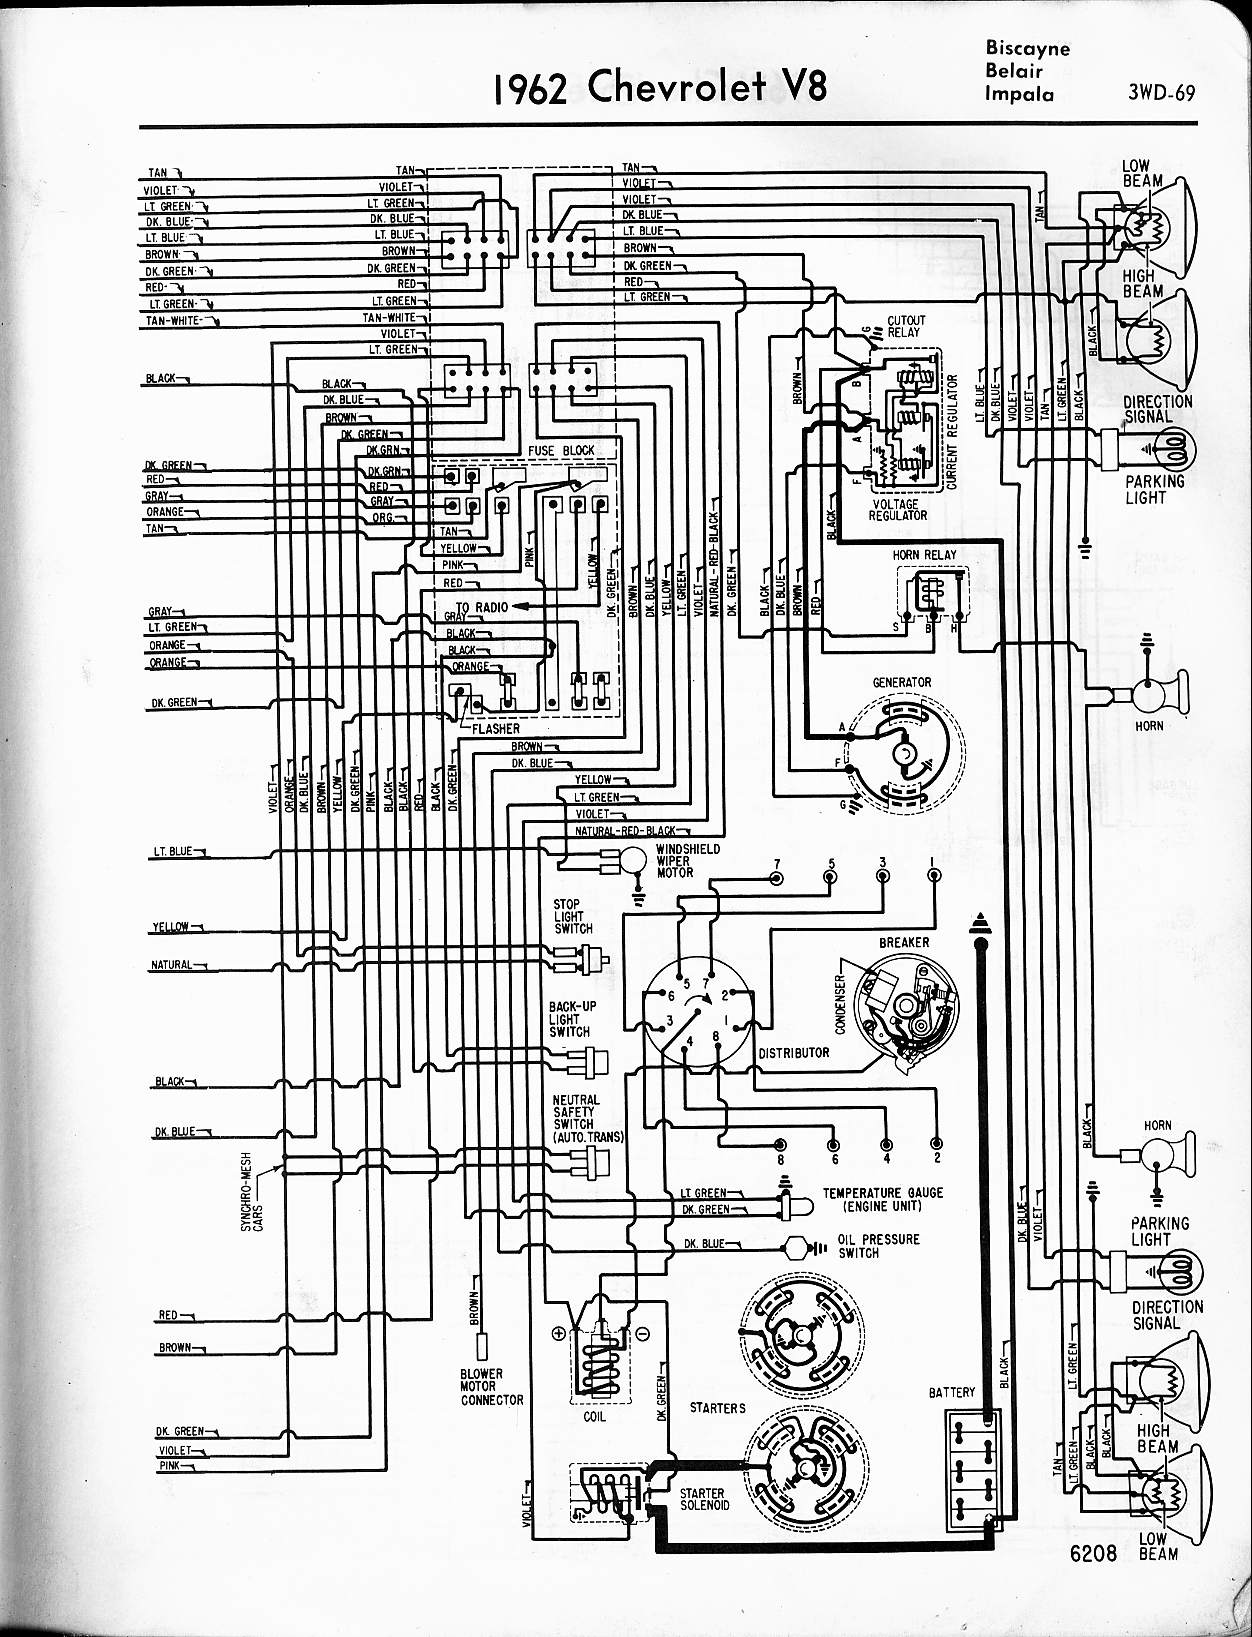 1965 Chevy Impala Wiring Diagram Free Download Trusted 57 65 Diagrams Rh Oldcarmanualproject Com Harness 2000